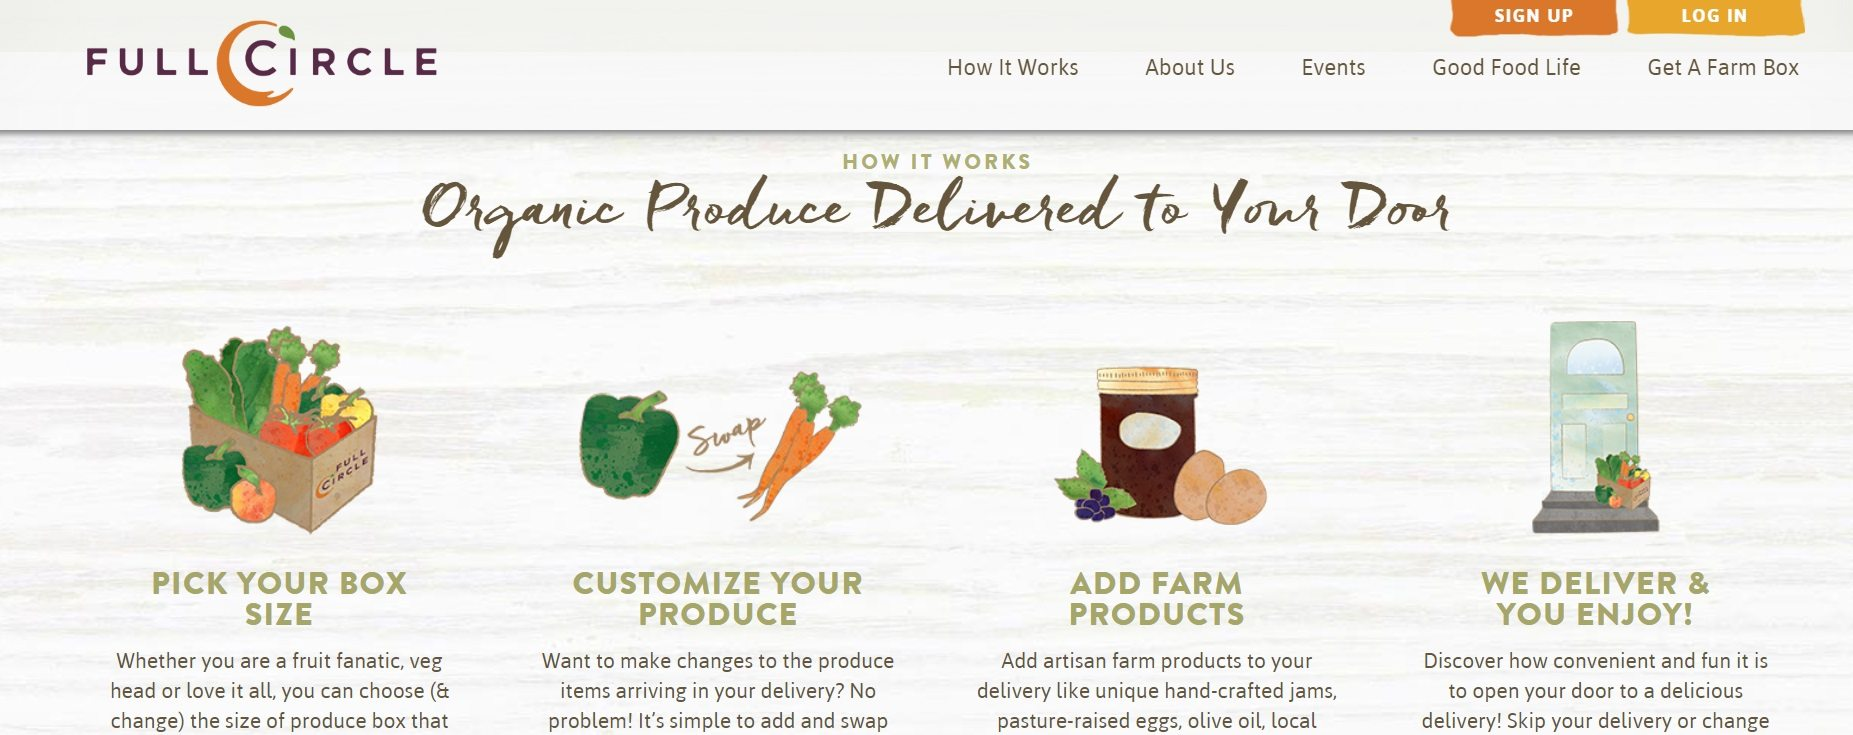 Full Circle Organic Produce Delivered to Your Door